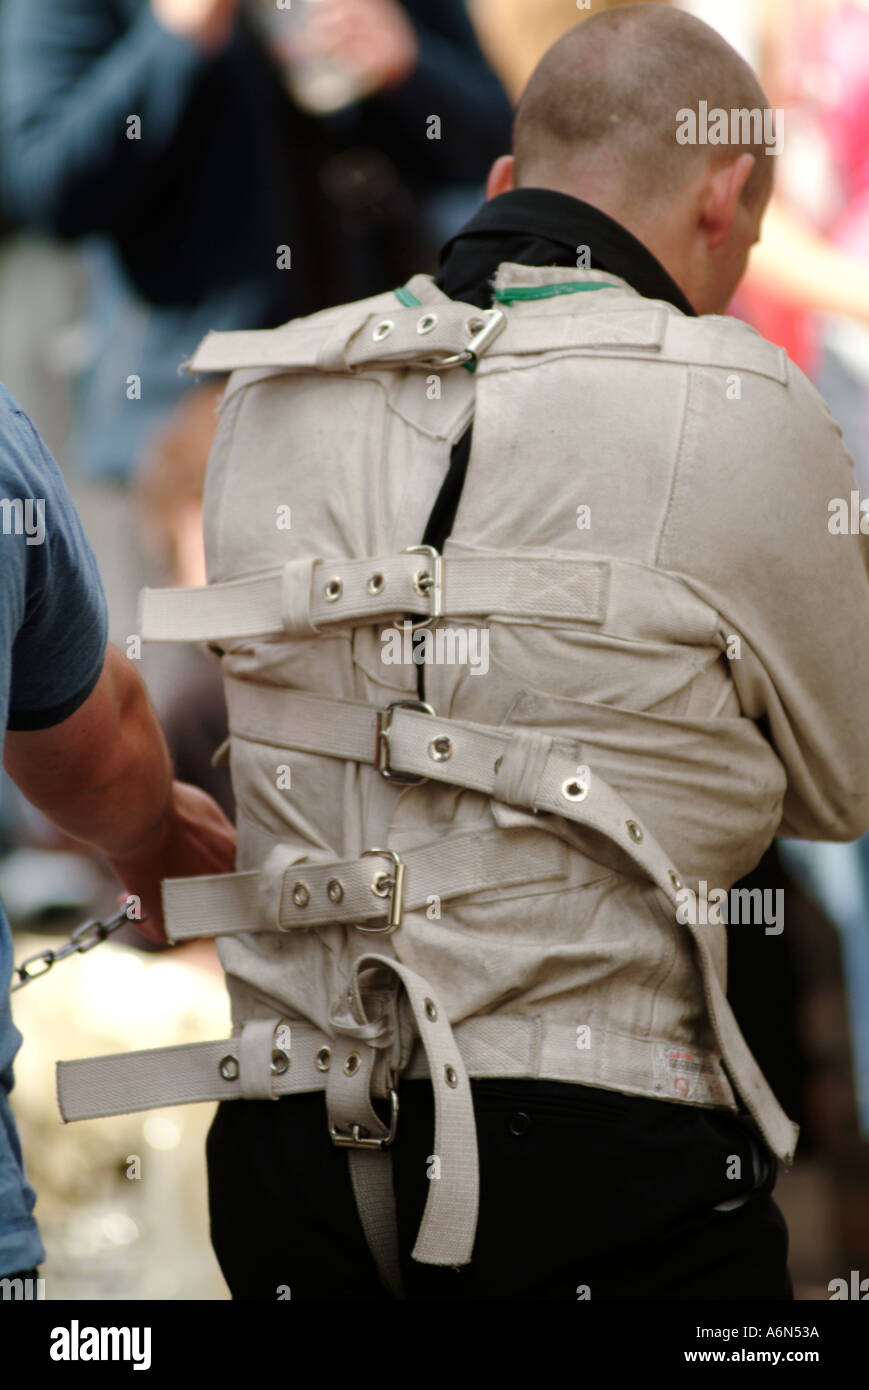 straight jacket street entertainer mad looney mental health handcuff tied up chain lock locked key strap escapologist Stock Photo